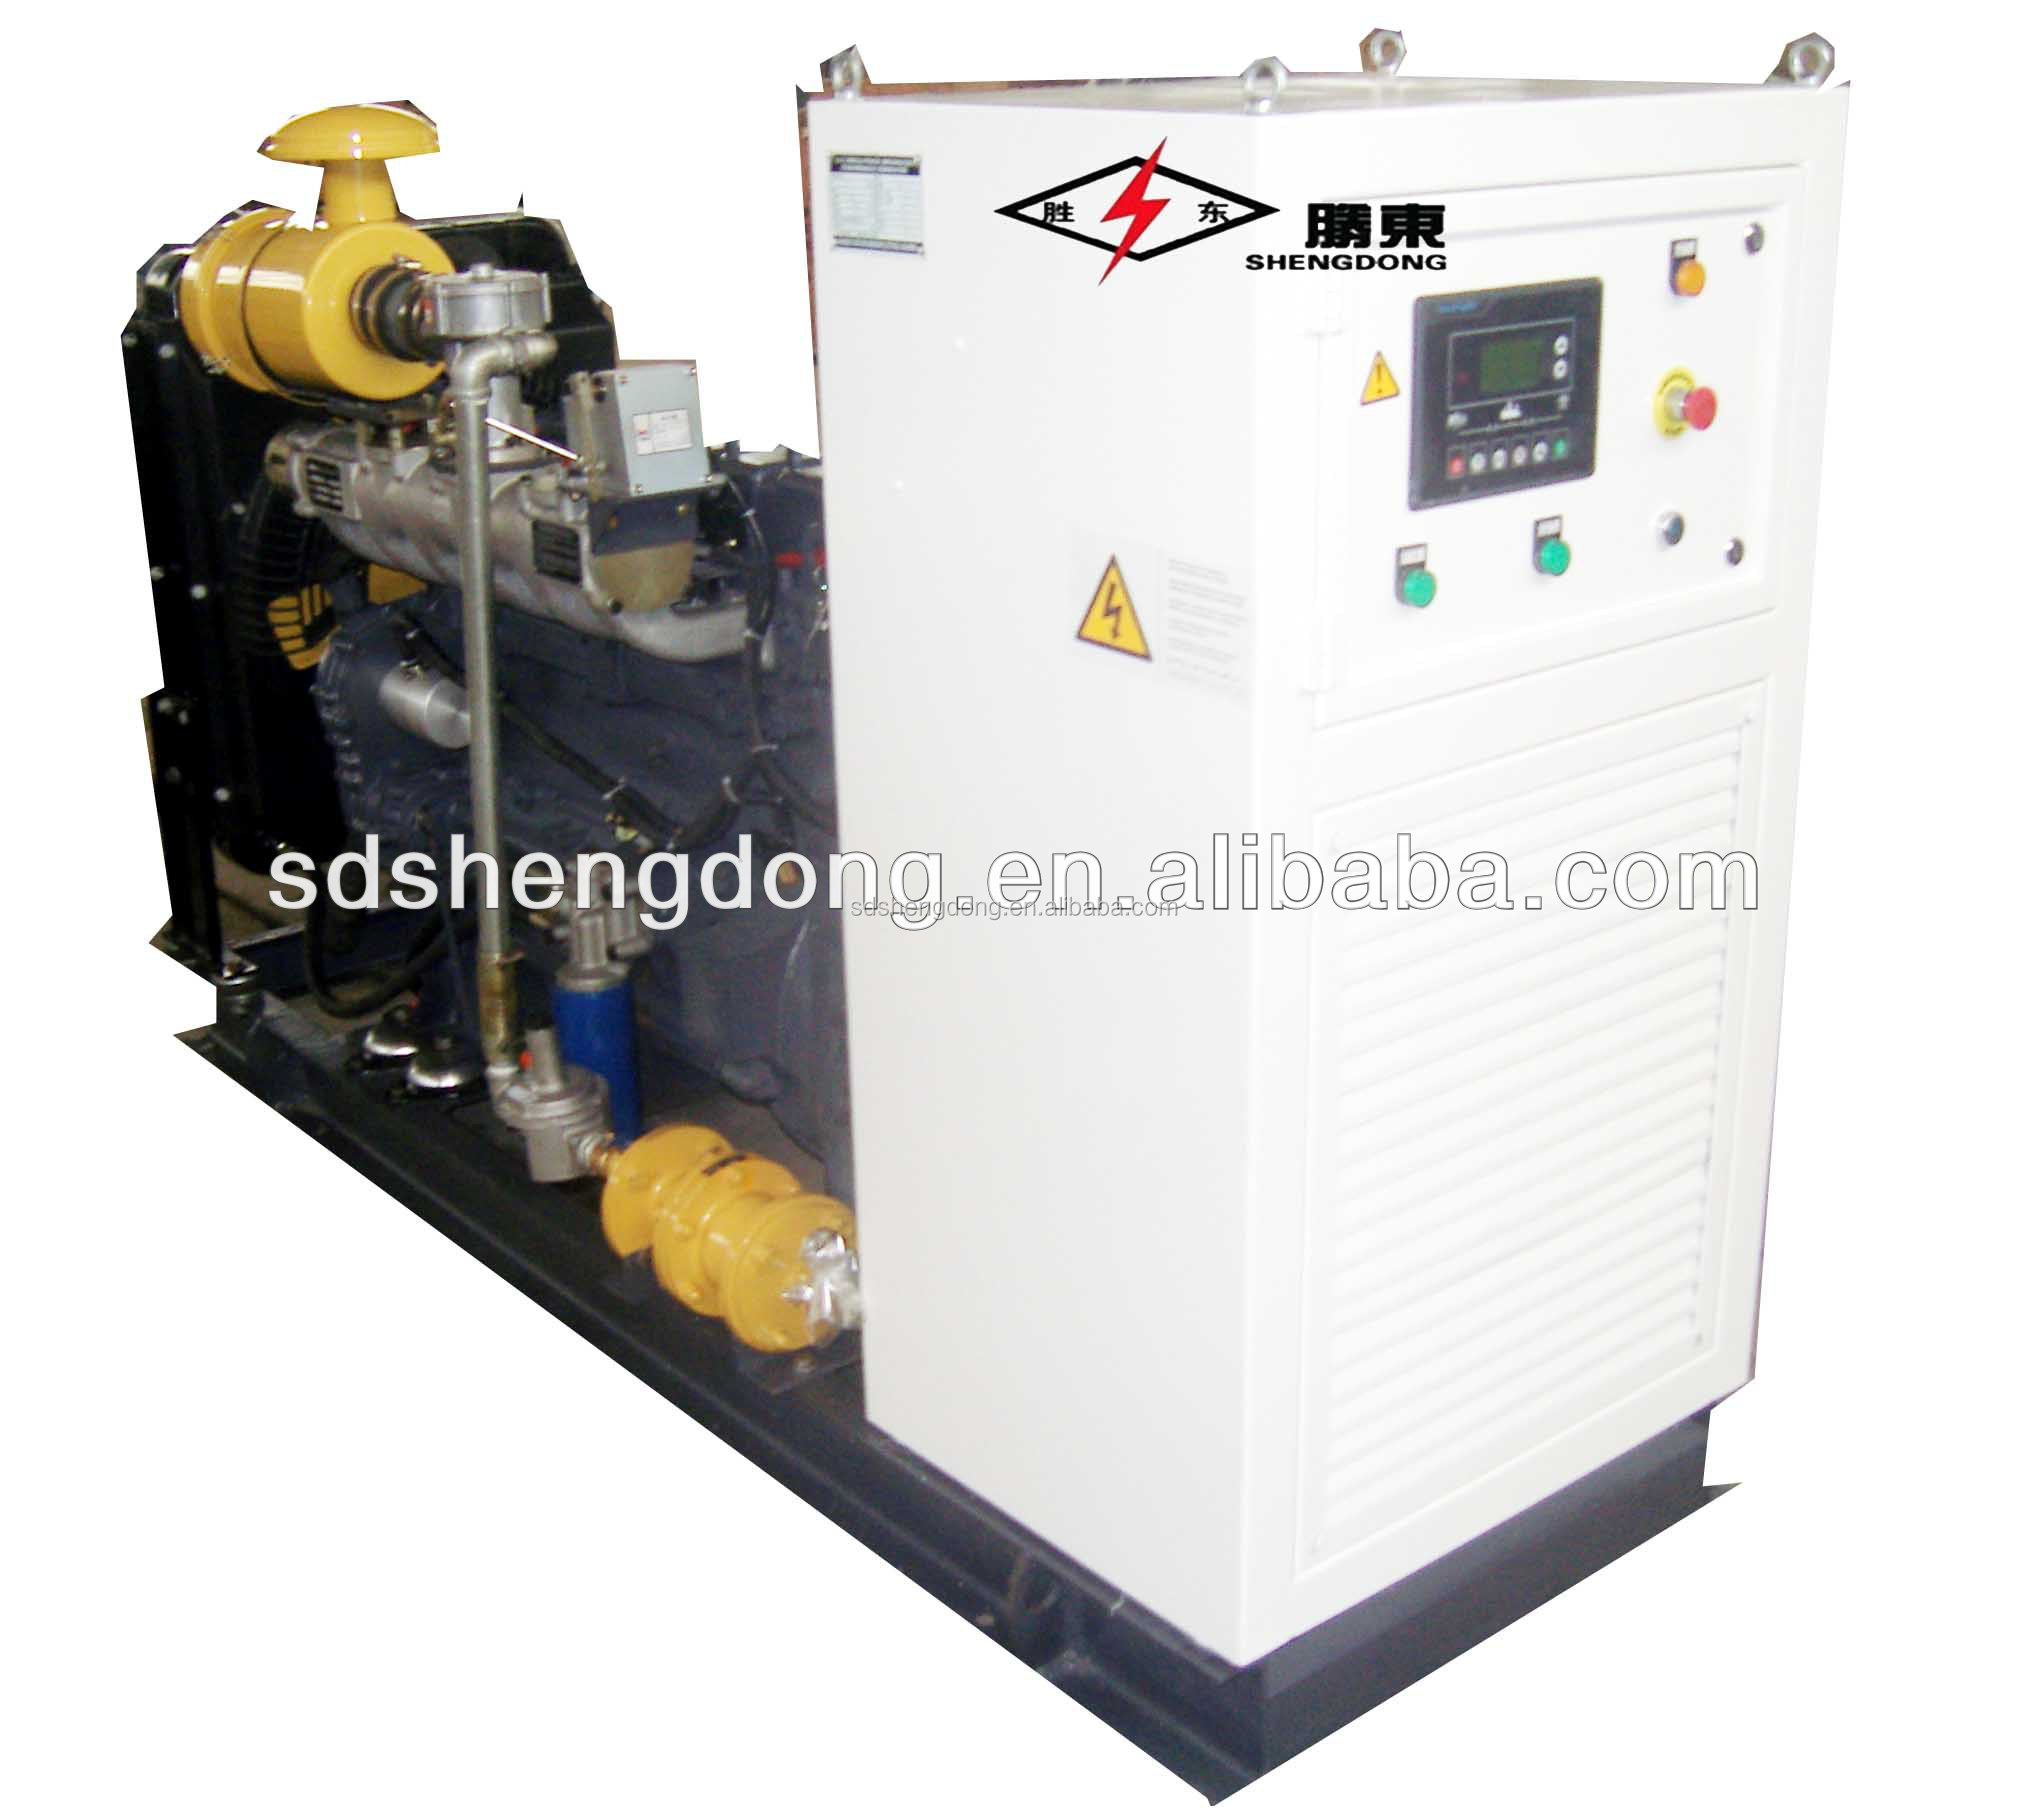 Factory Discount Price Biogas/Natural Gas/LPG/CHP Generator